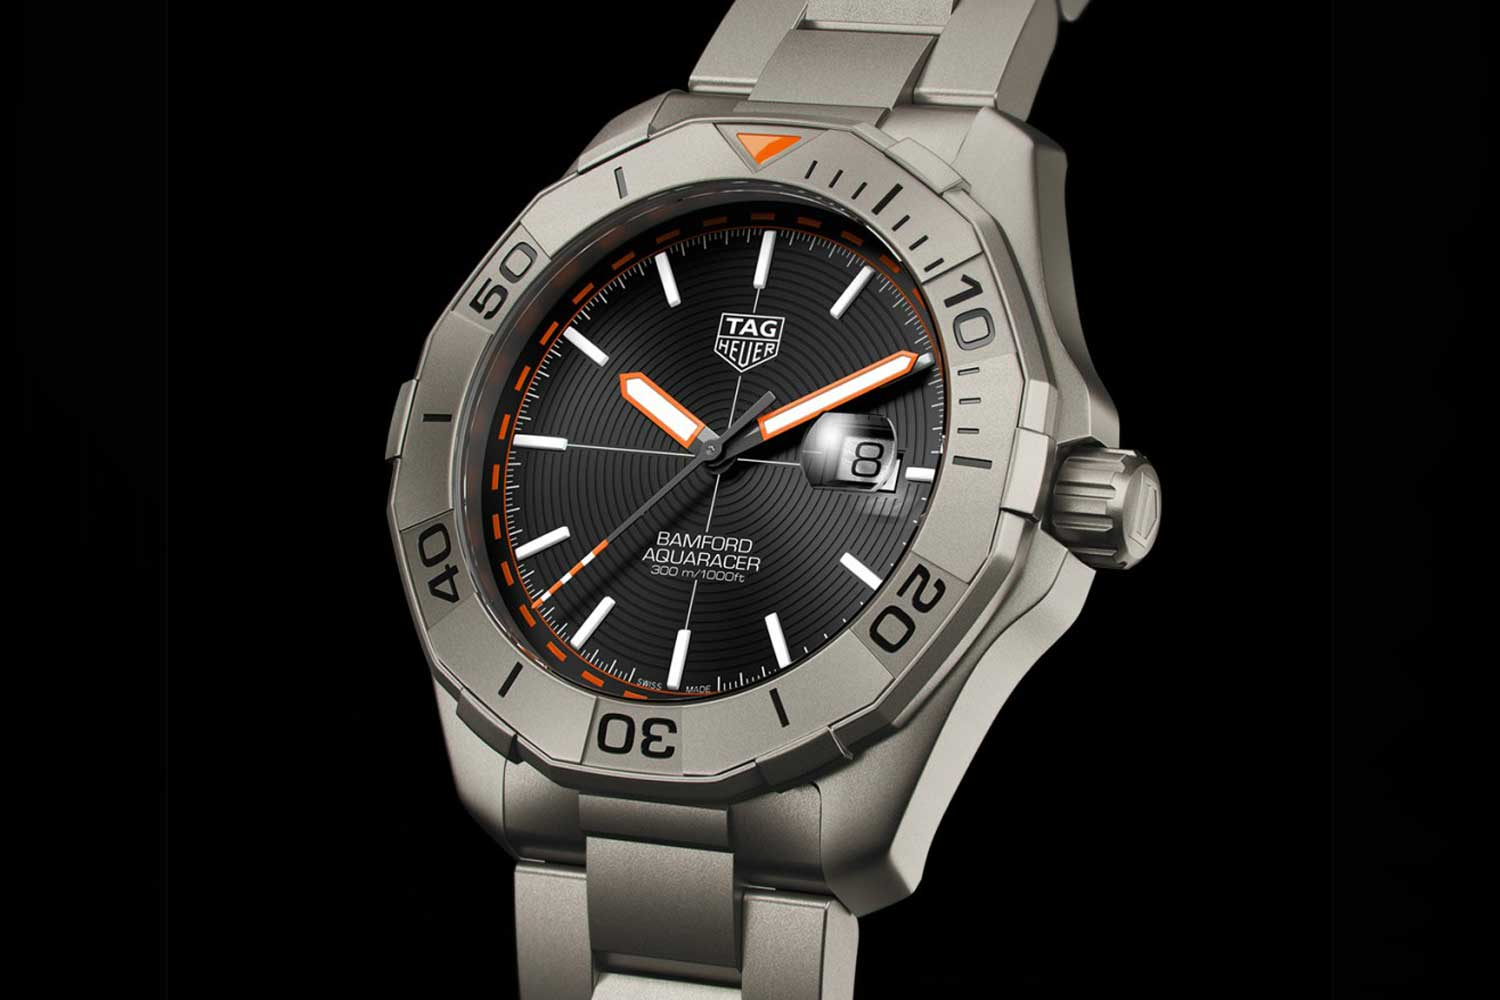 The TAG Heuer Aquaracer Bamford Limited Edition